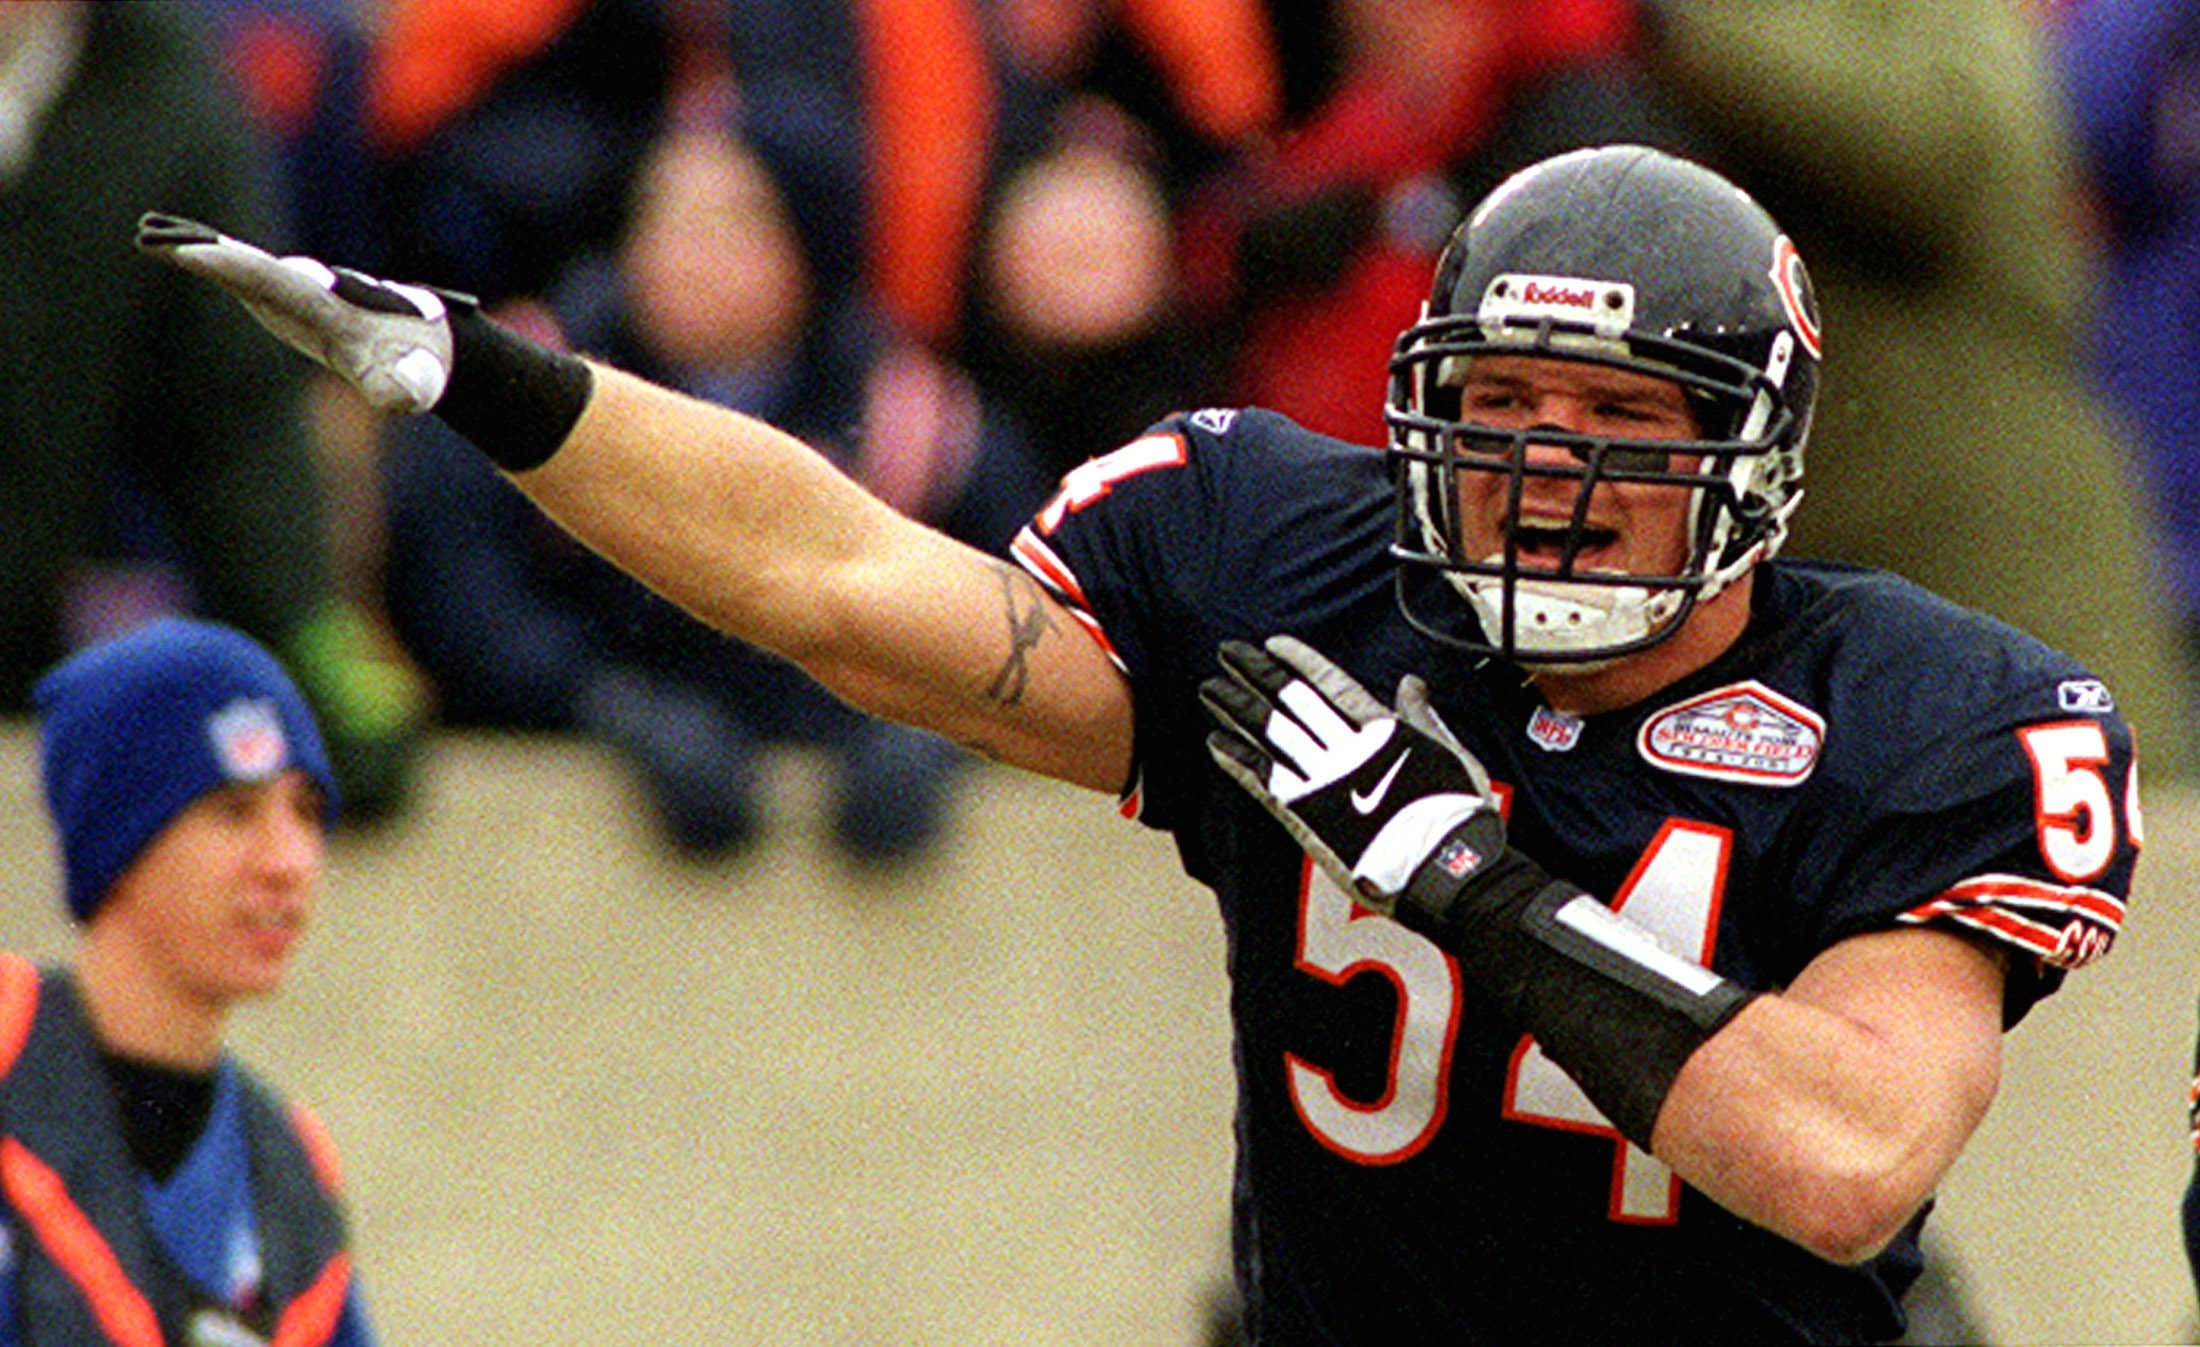 Linebacker Brian Urlacher, 182 games, is sixth among most games played in Bears history